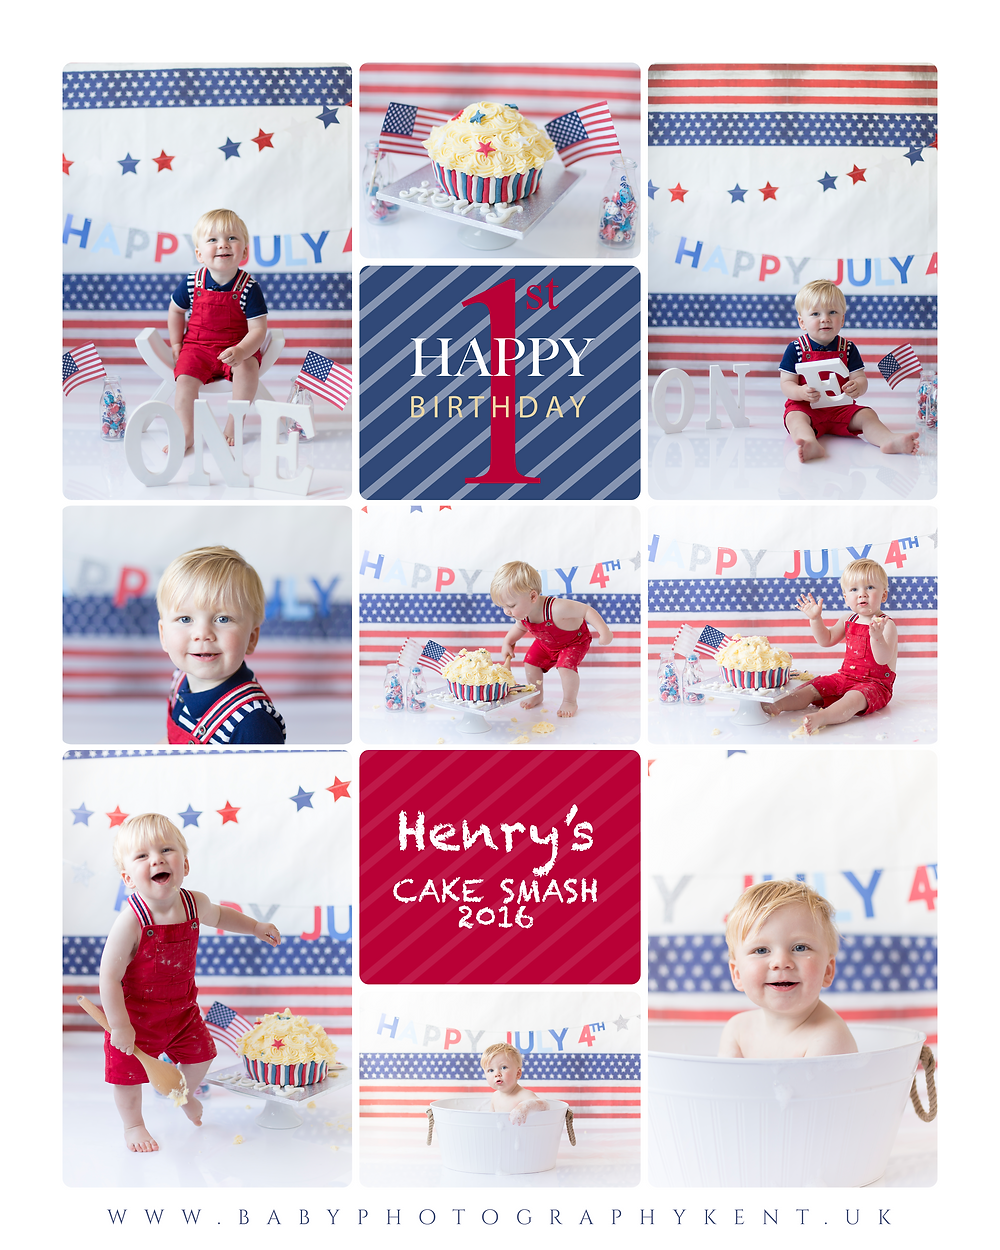 4th of july themed cake smash,cake smash photography, photographers in kent, cake smash & splash, baby photography kent, photographers kent